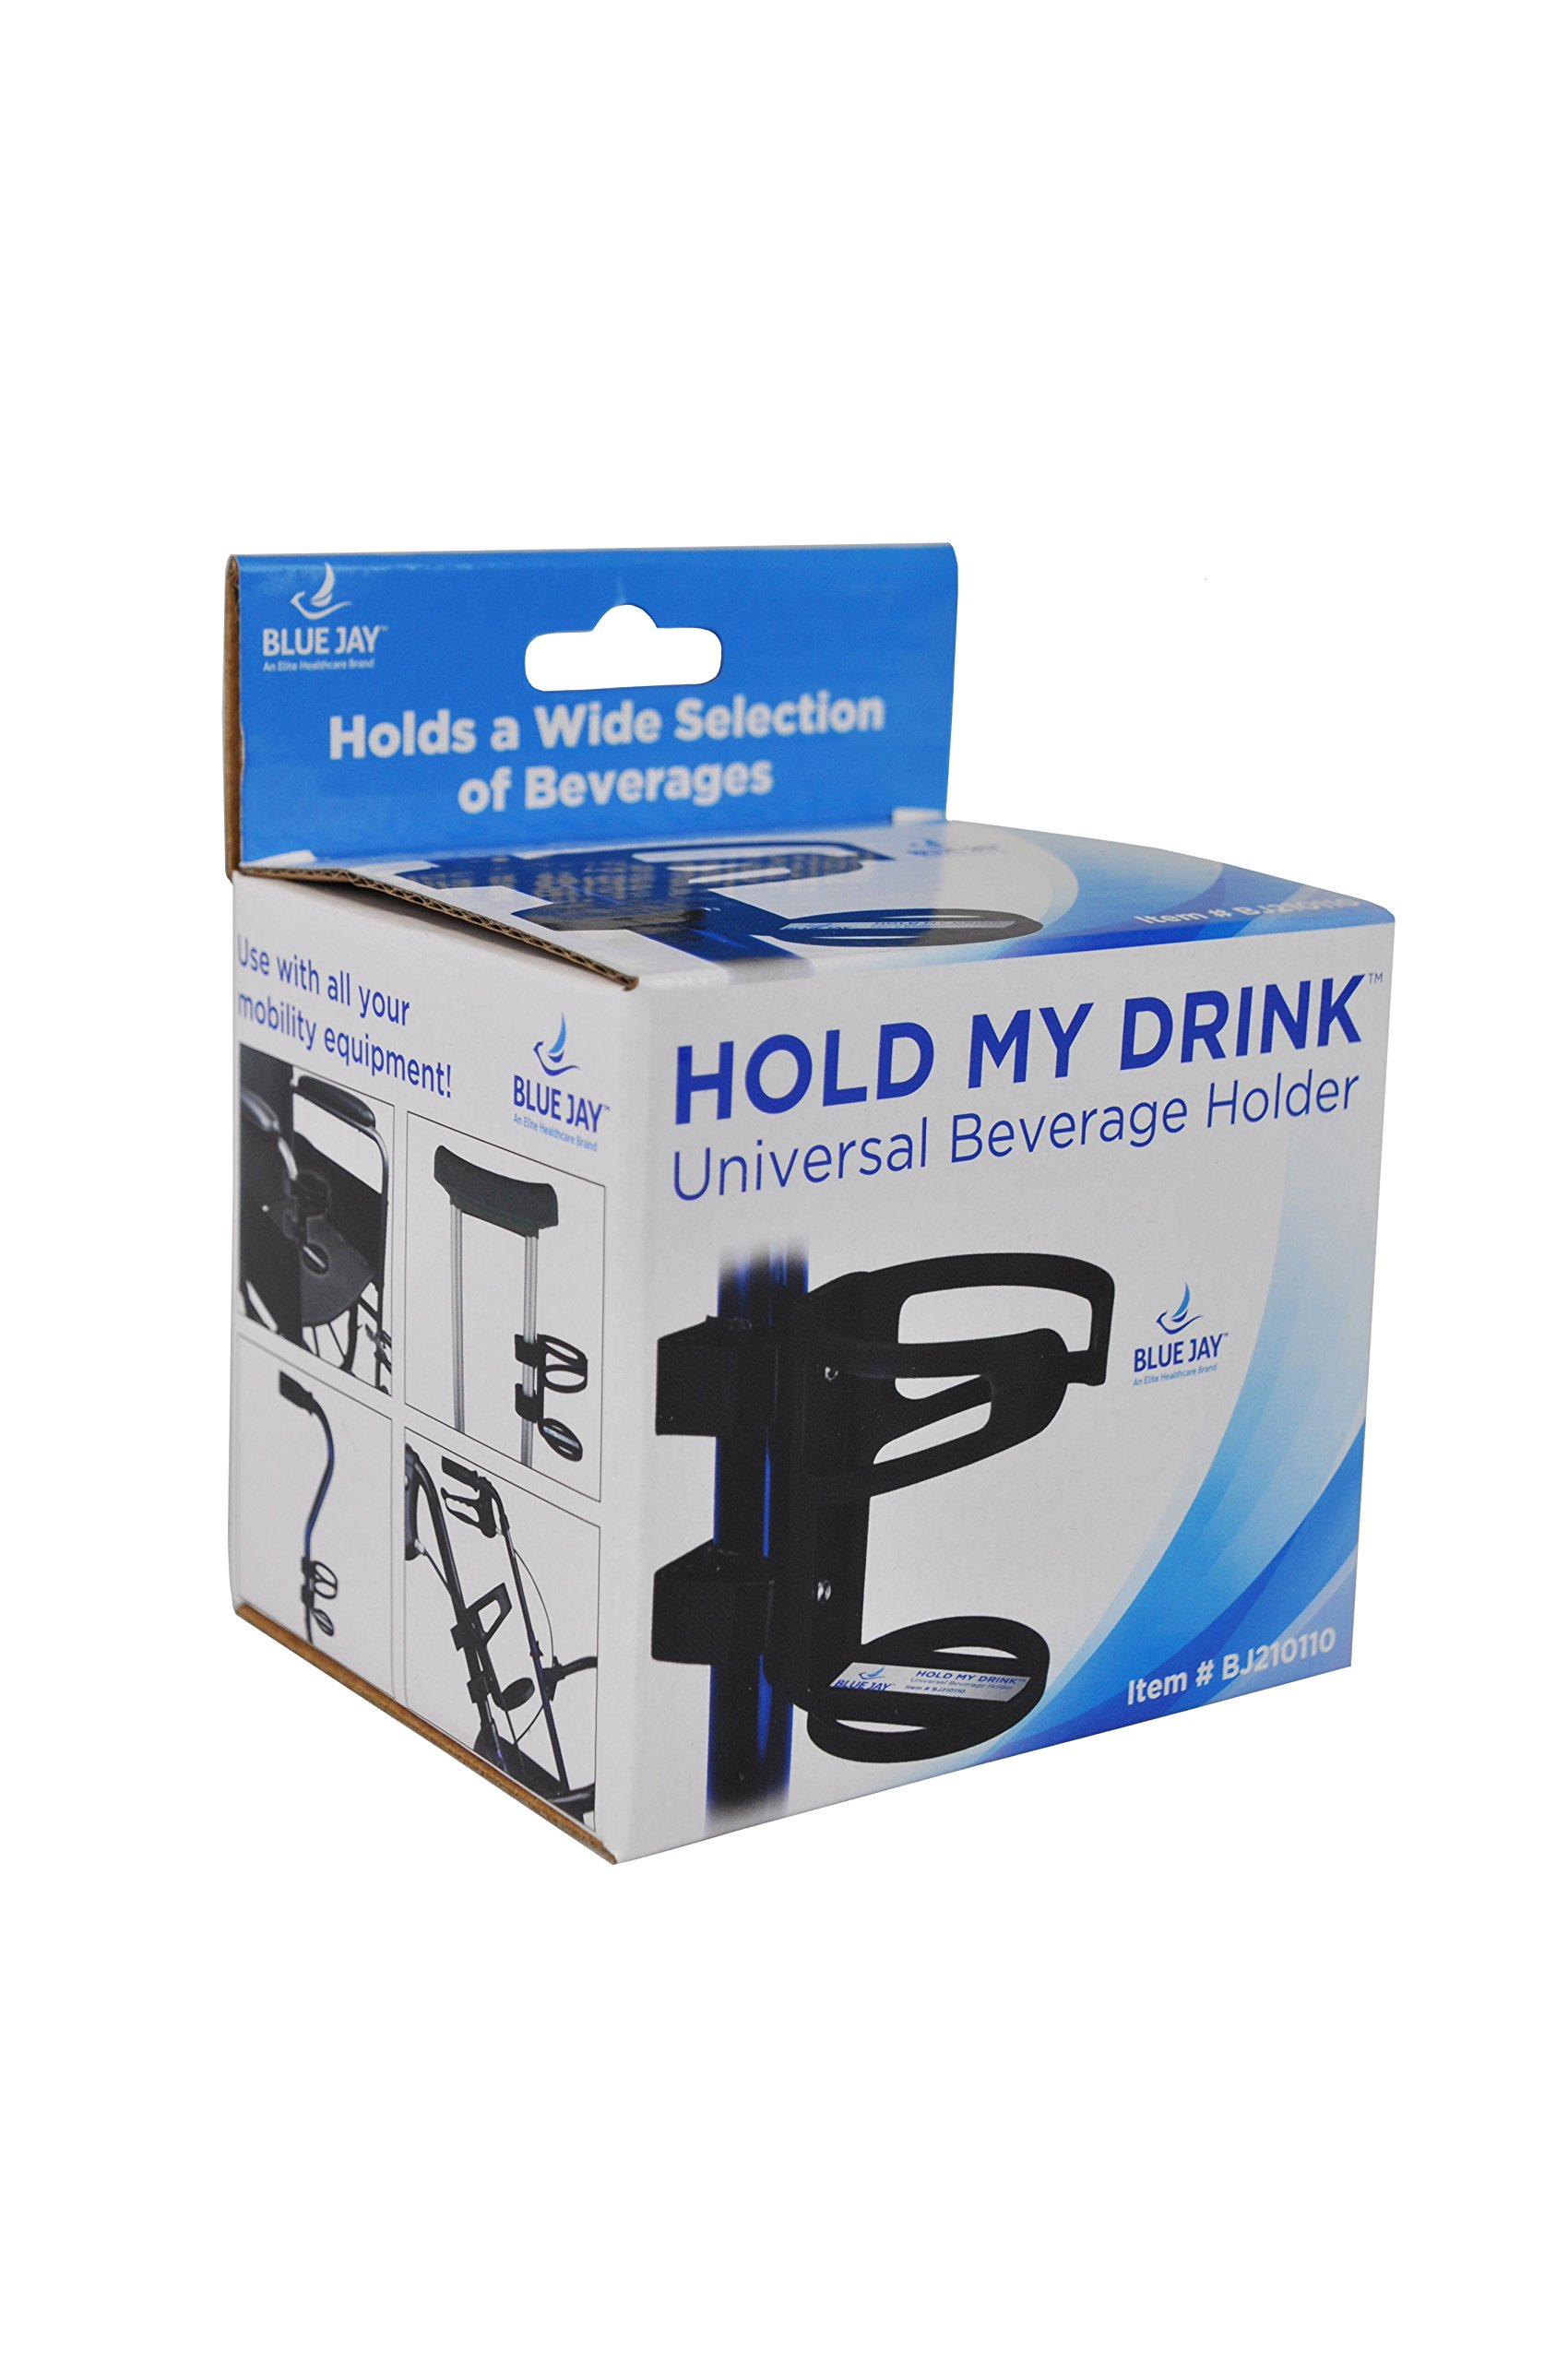 Blue Jay™ Hold My Drink Universal Beverage Holder, Use With All Your Mobil Equipment, Holds A Wide Selection Of Beverages Just Attach and Adjust, No Tools Required, Black, Non-Slip Strip, Flexible by Blue Jay An Elite Healthcare Brand (Image #2)